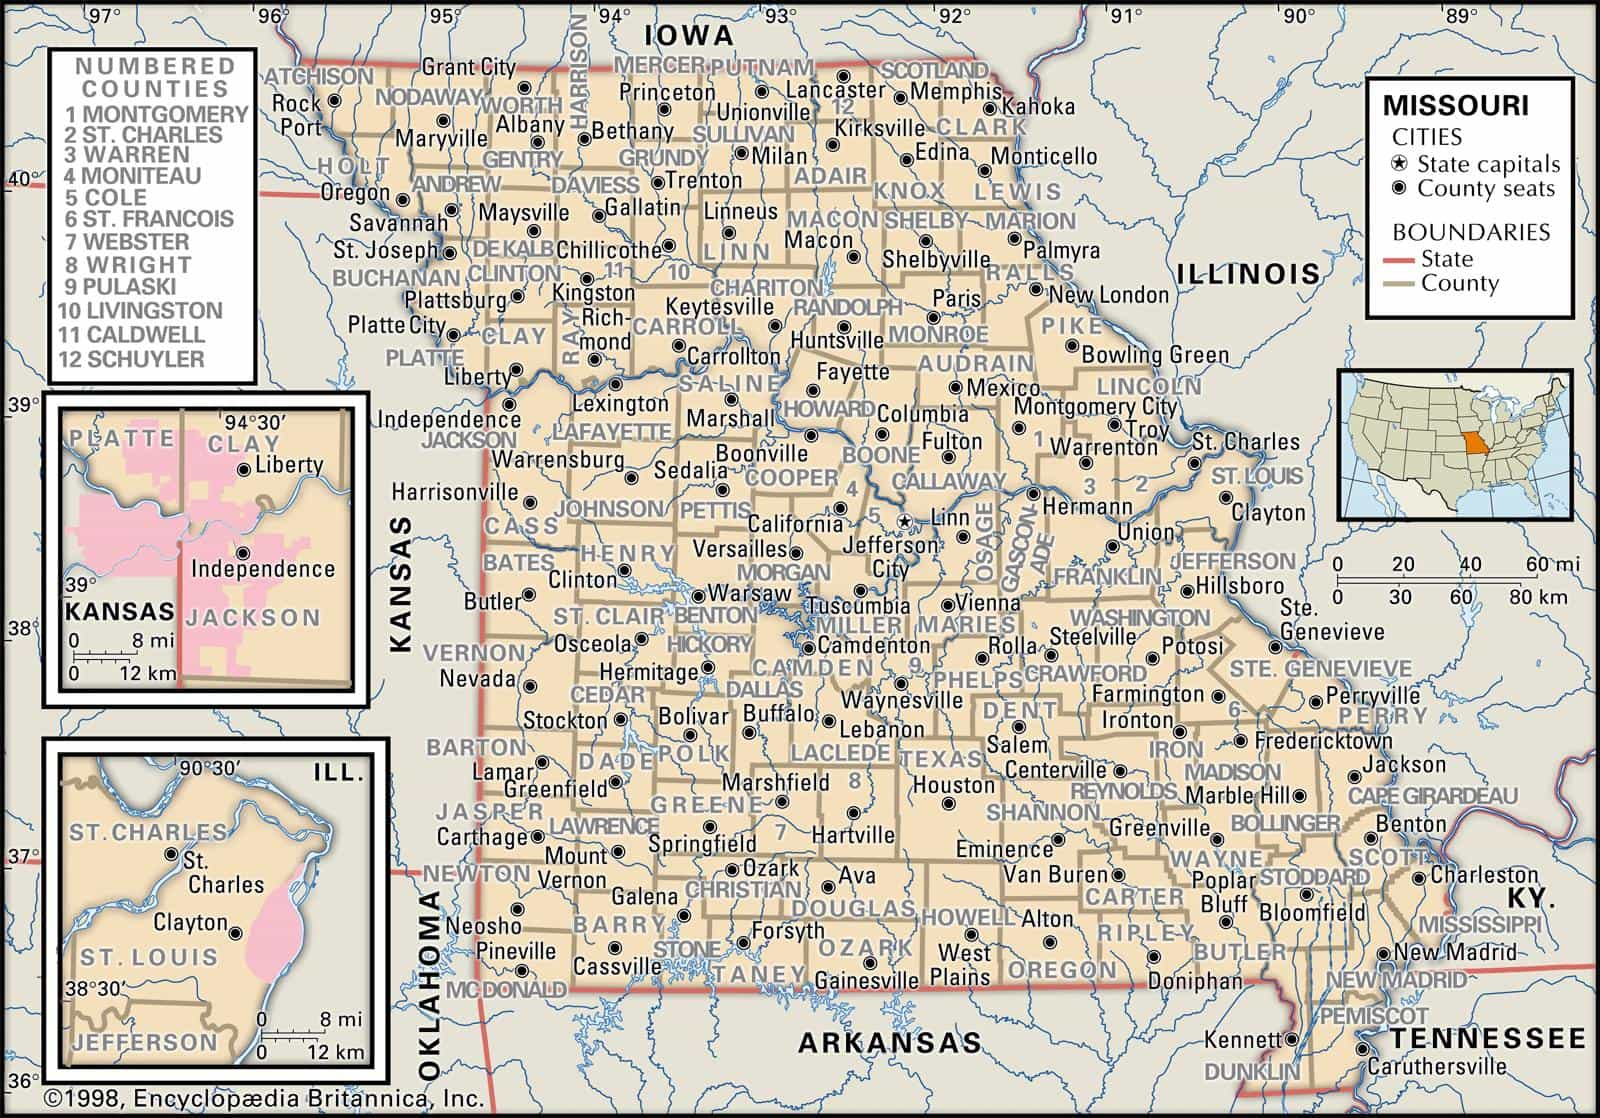 Historical Facts of Missouri Counties Guide